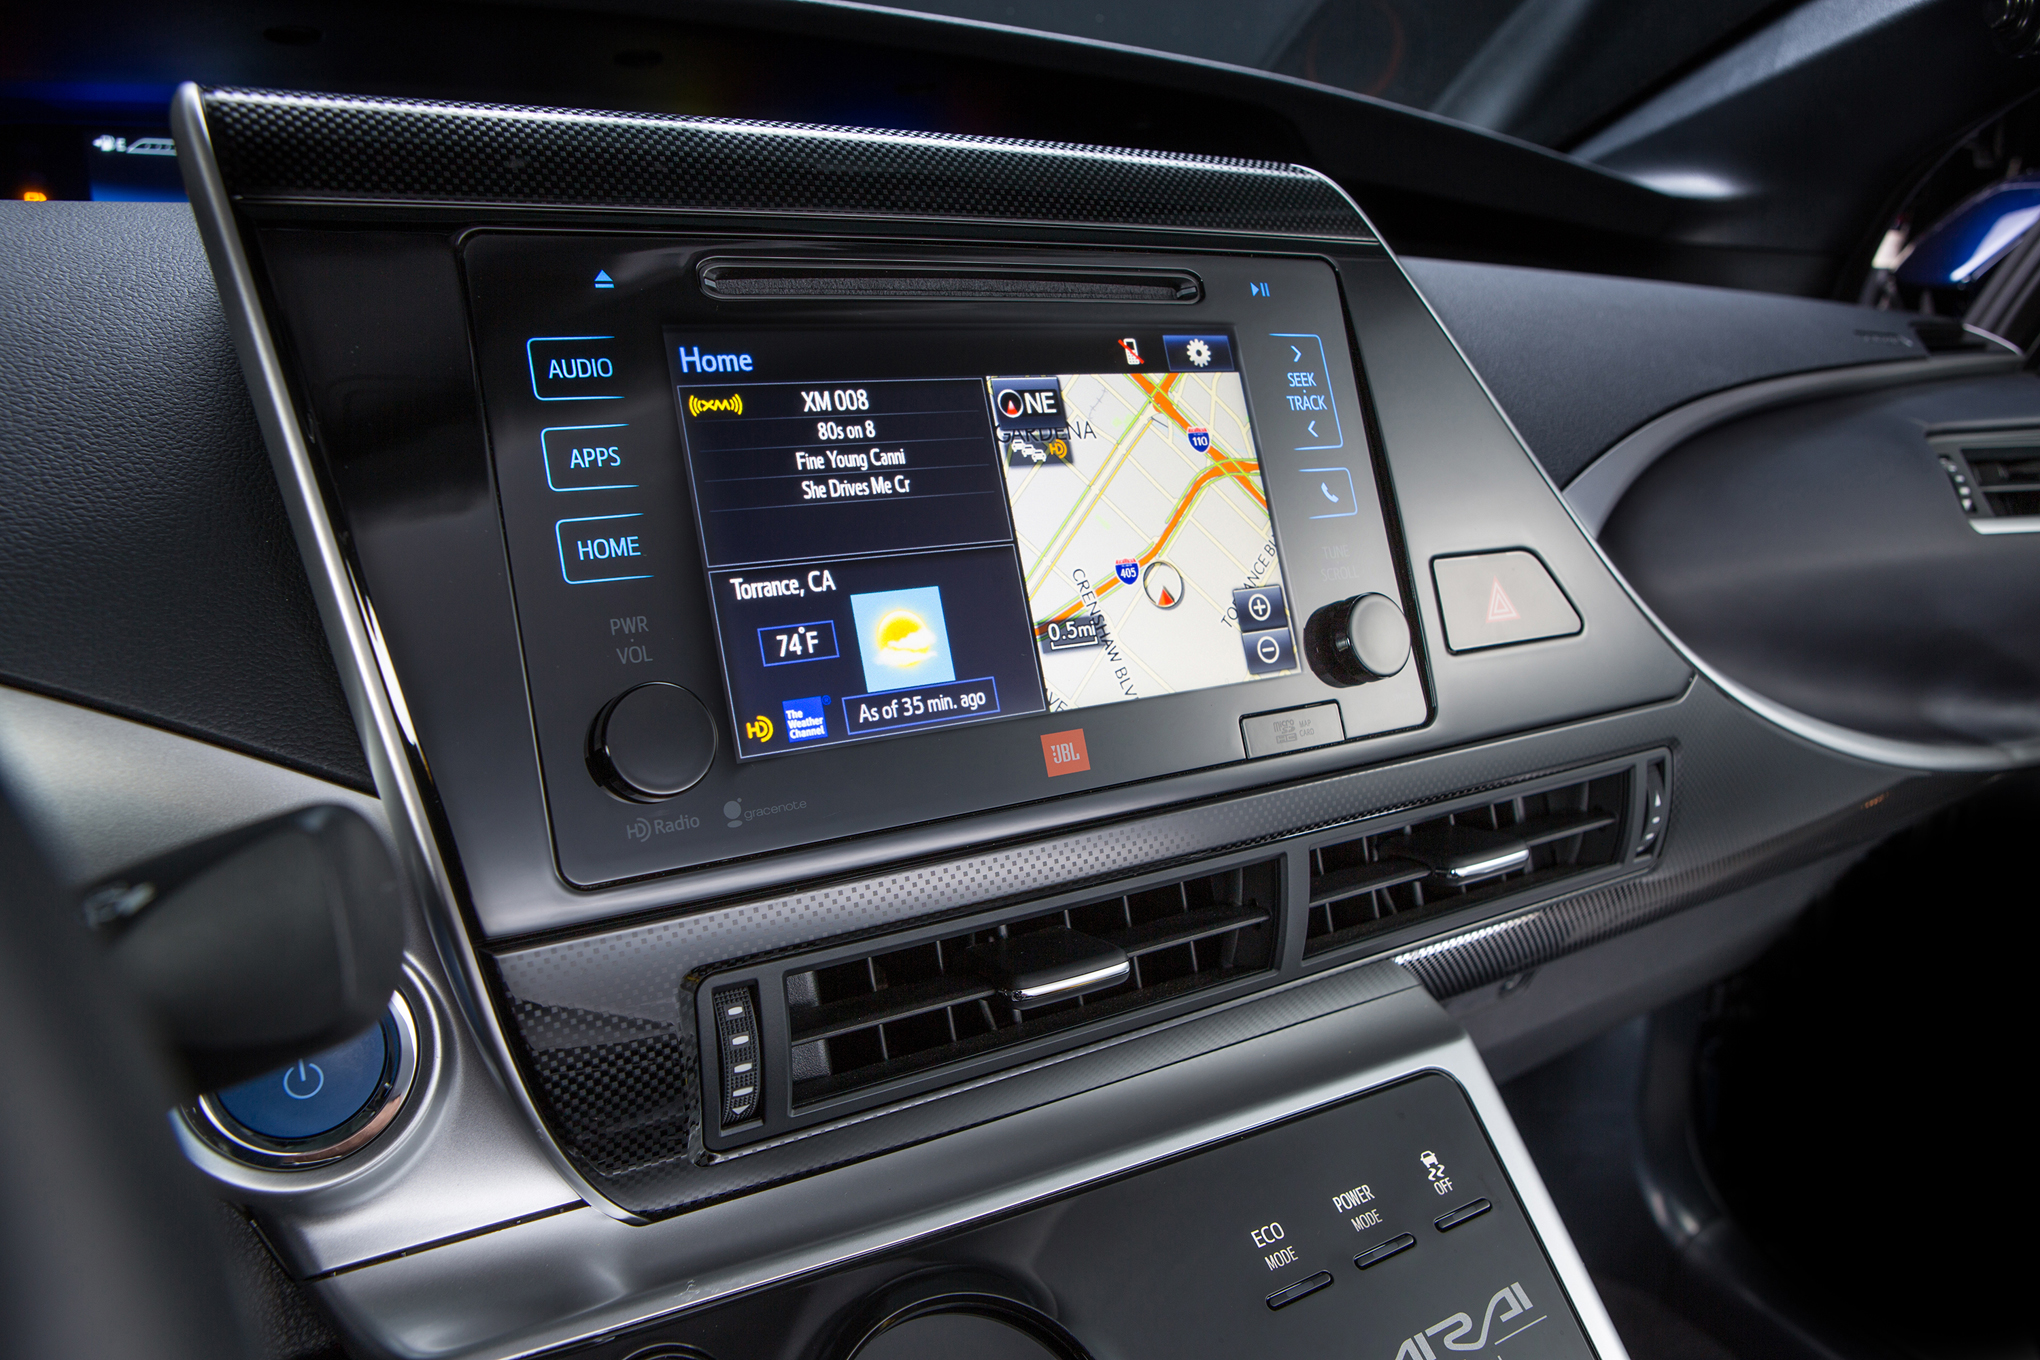 2016 Toyota Mirai Head Unit Screen (View 15 of 18)